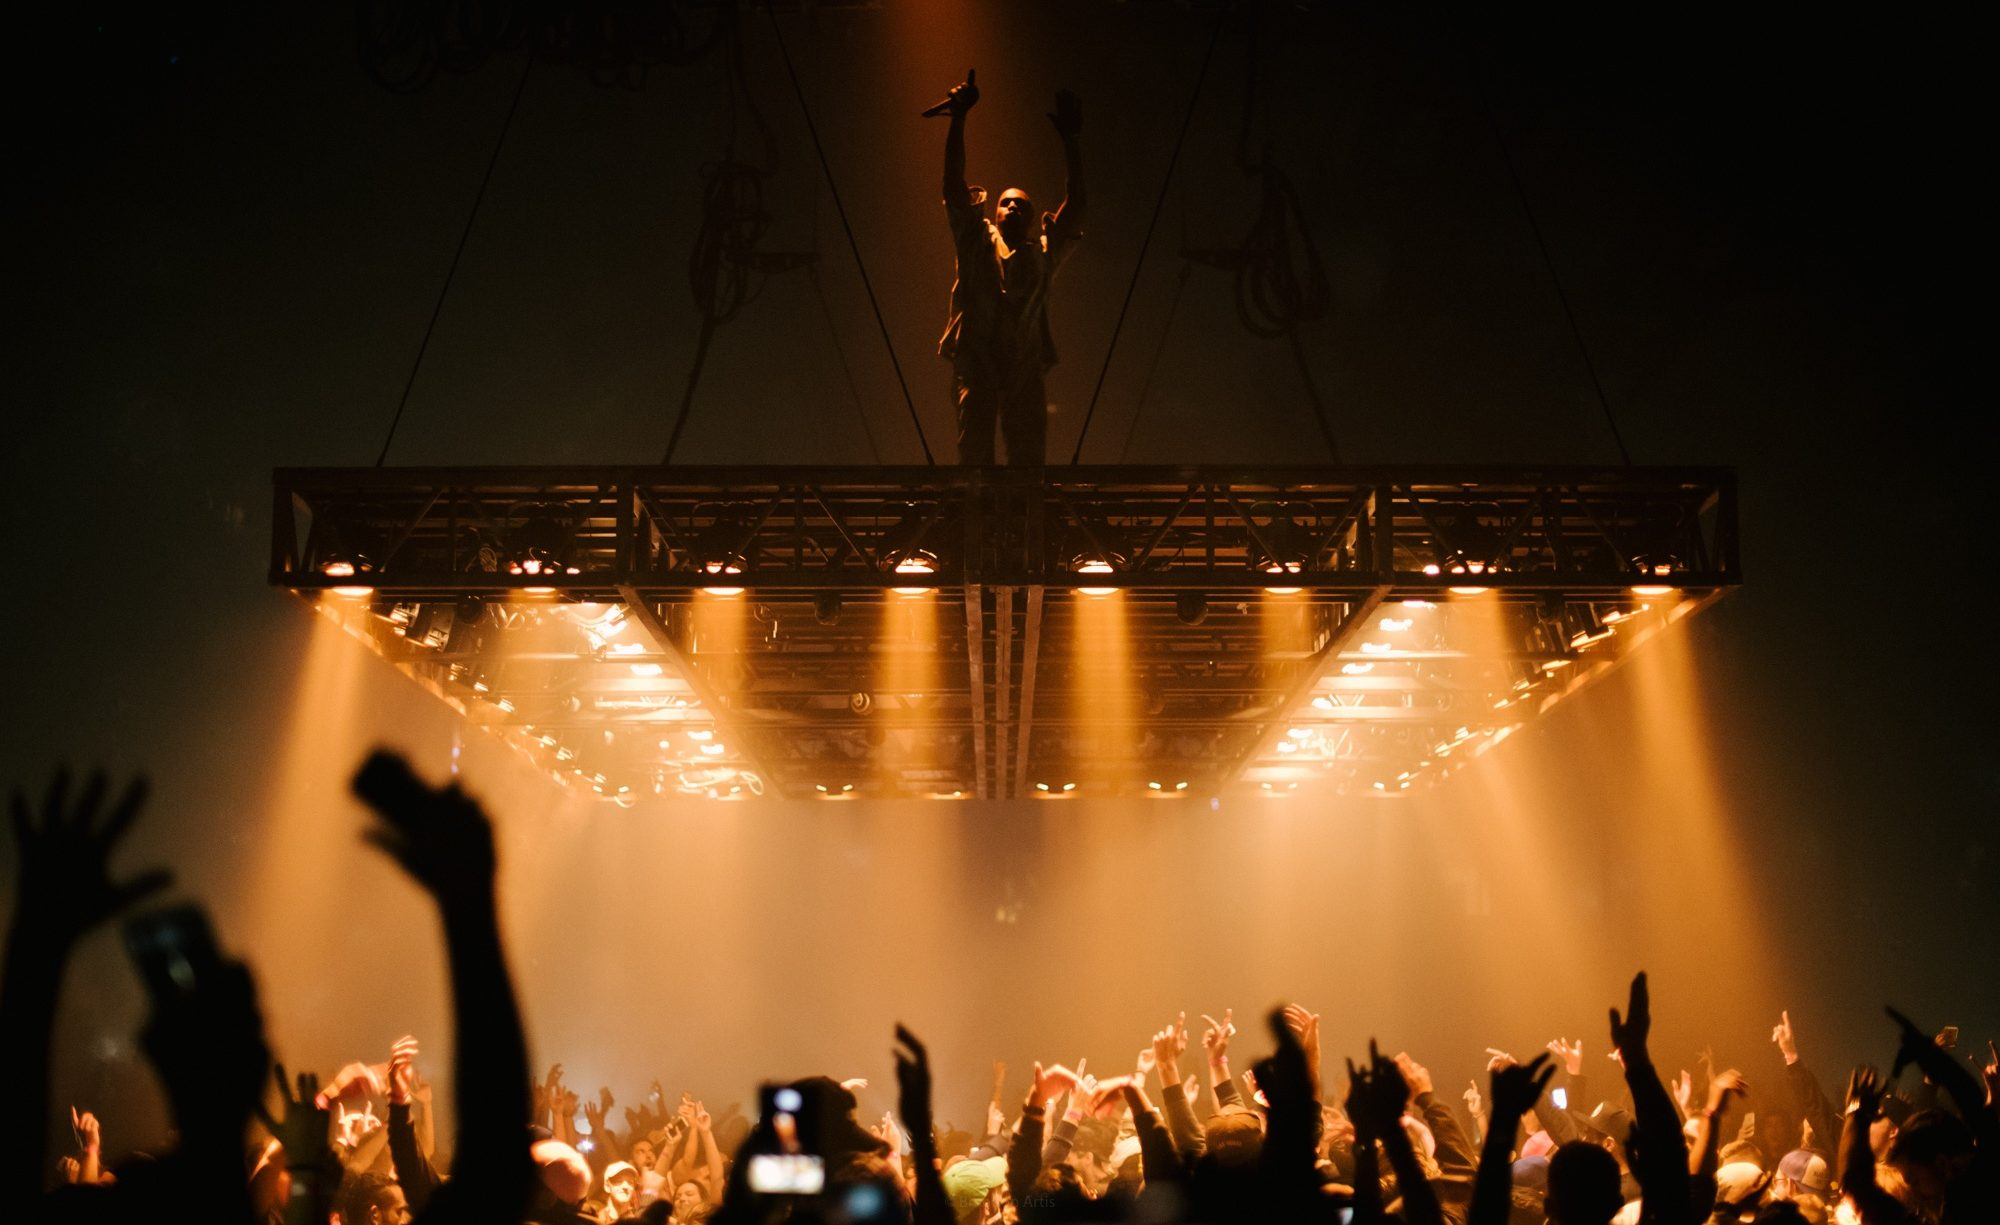 Kanye west %40 rogers arena brandon artis photography 6 e1476804151529